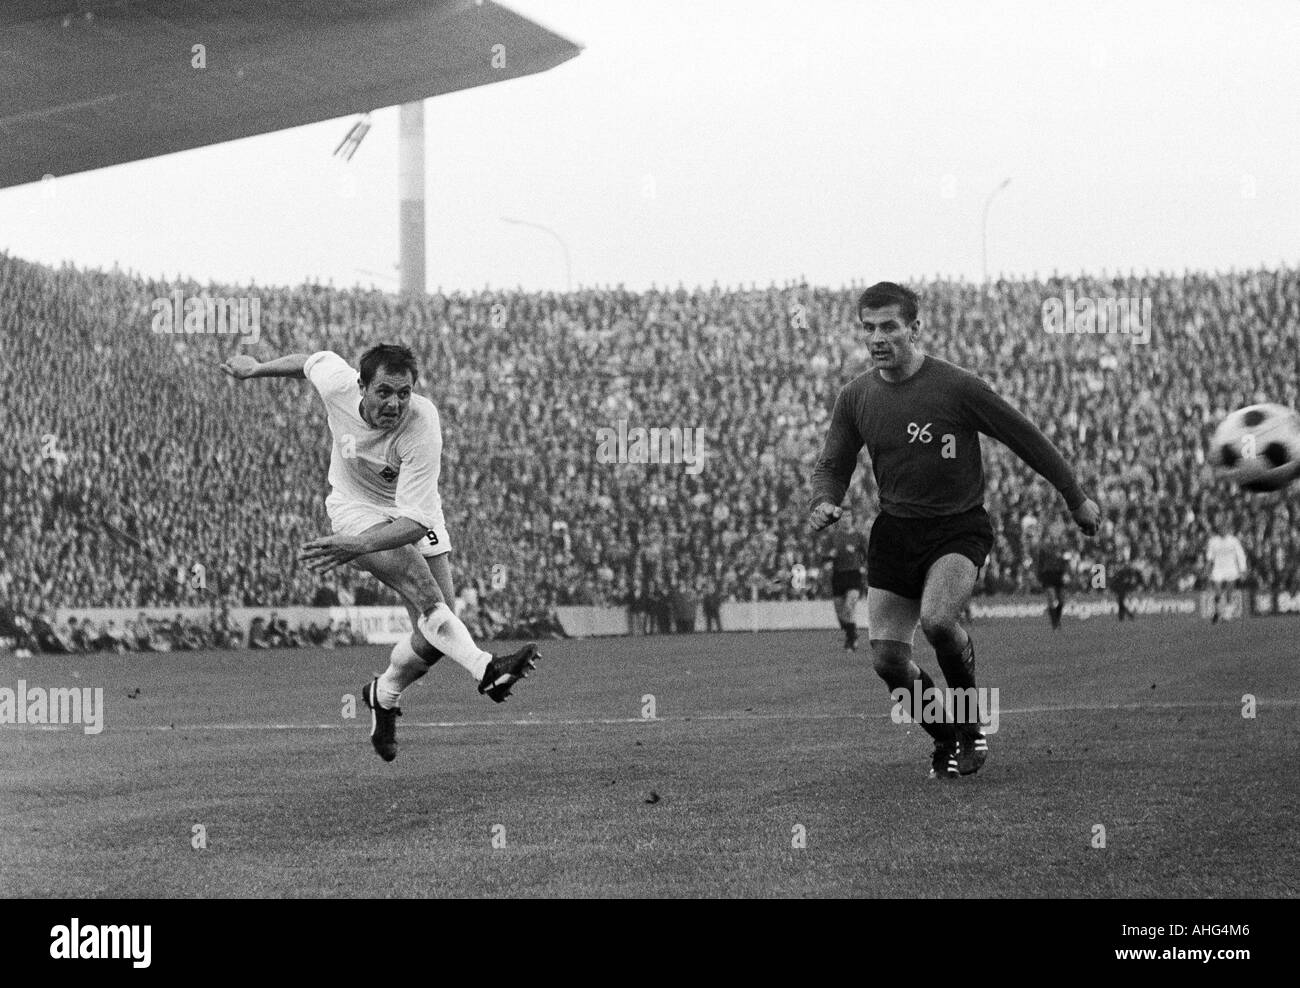 football, Bundesliga, 1967/1968, Borussia Moenchengladbach versus Hanover 96 5:1, Boekelberg Stadium, scene of the match, Peter Meyer (Gladbach) shots on goal, right Christian Breuer (96) - Stock Image